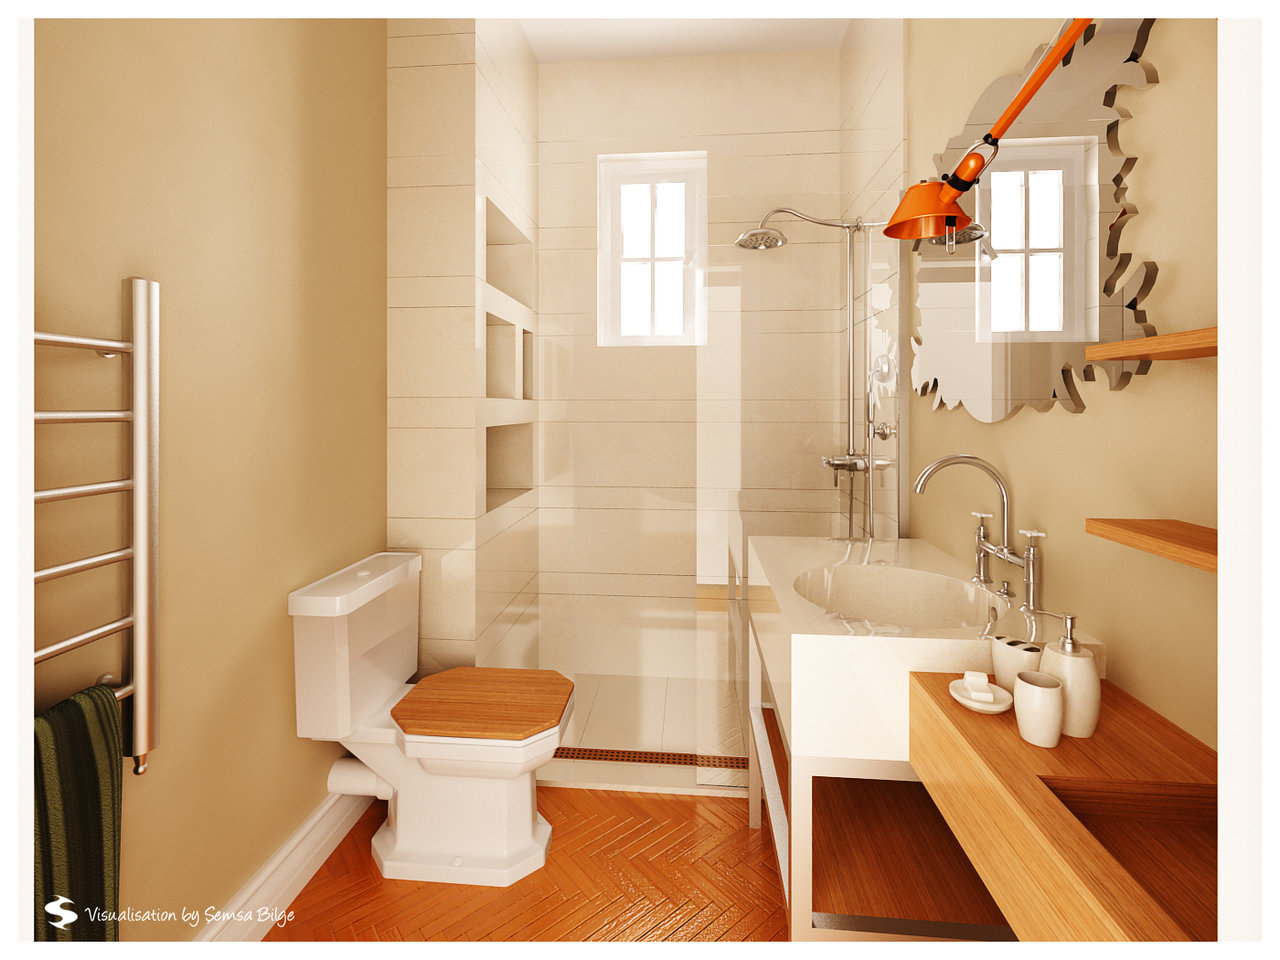 Designing a small bathroom